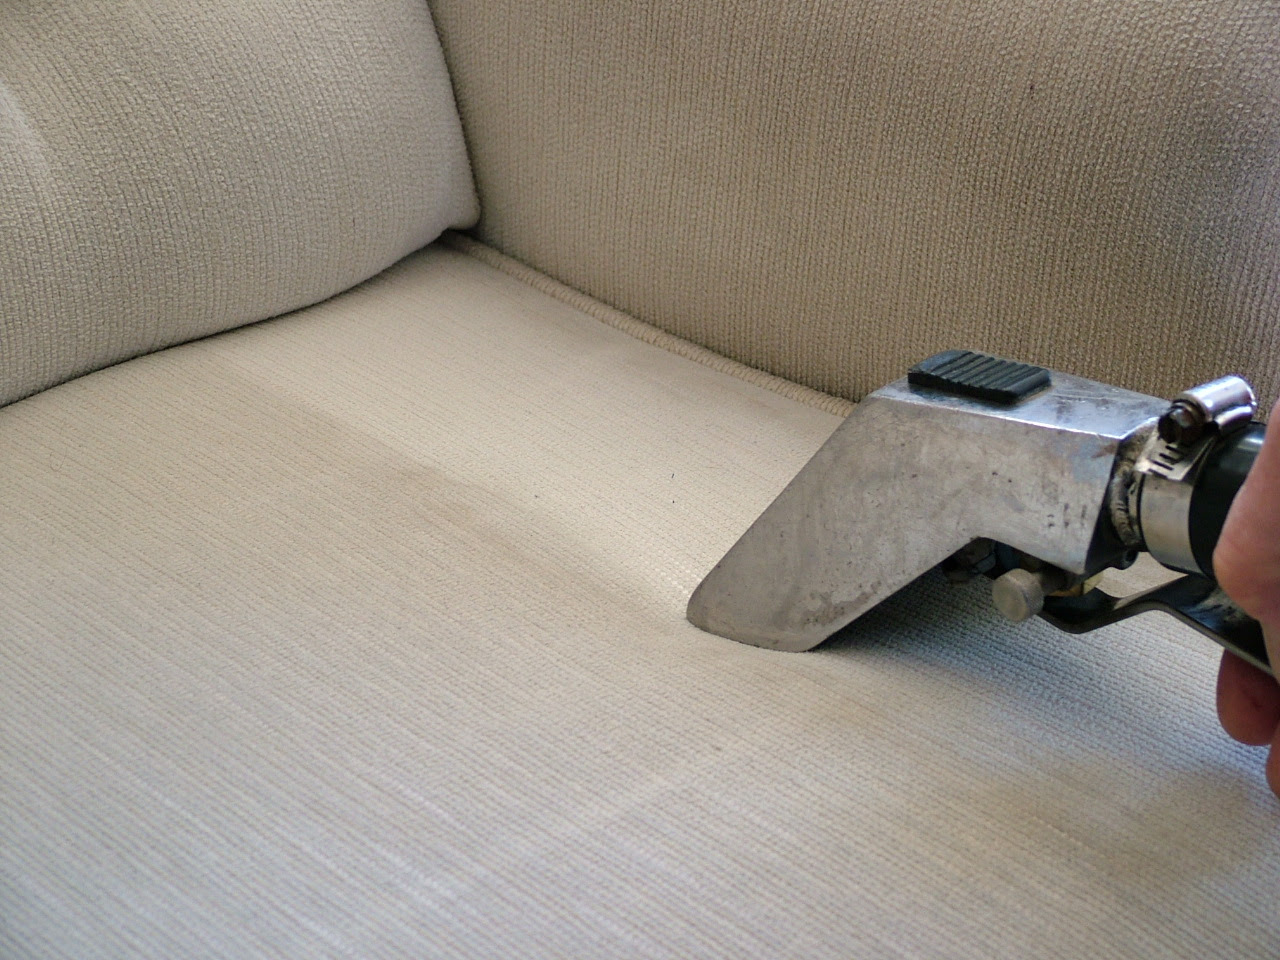 Upholstery Cleaning in Mercer County NJ